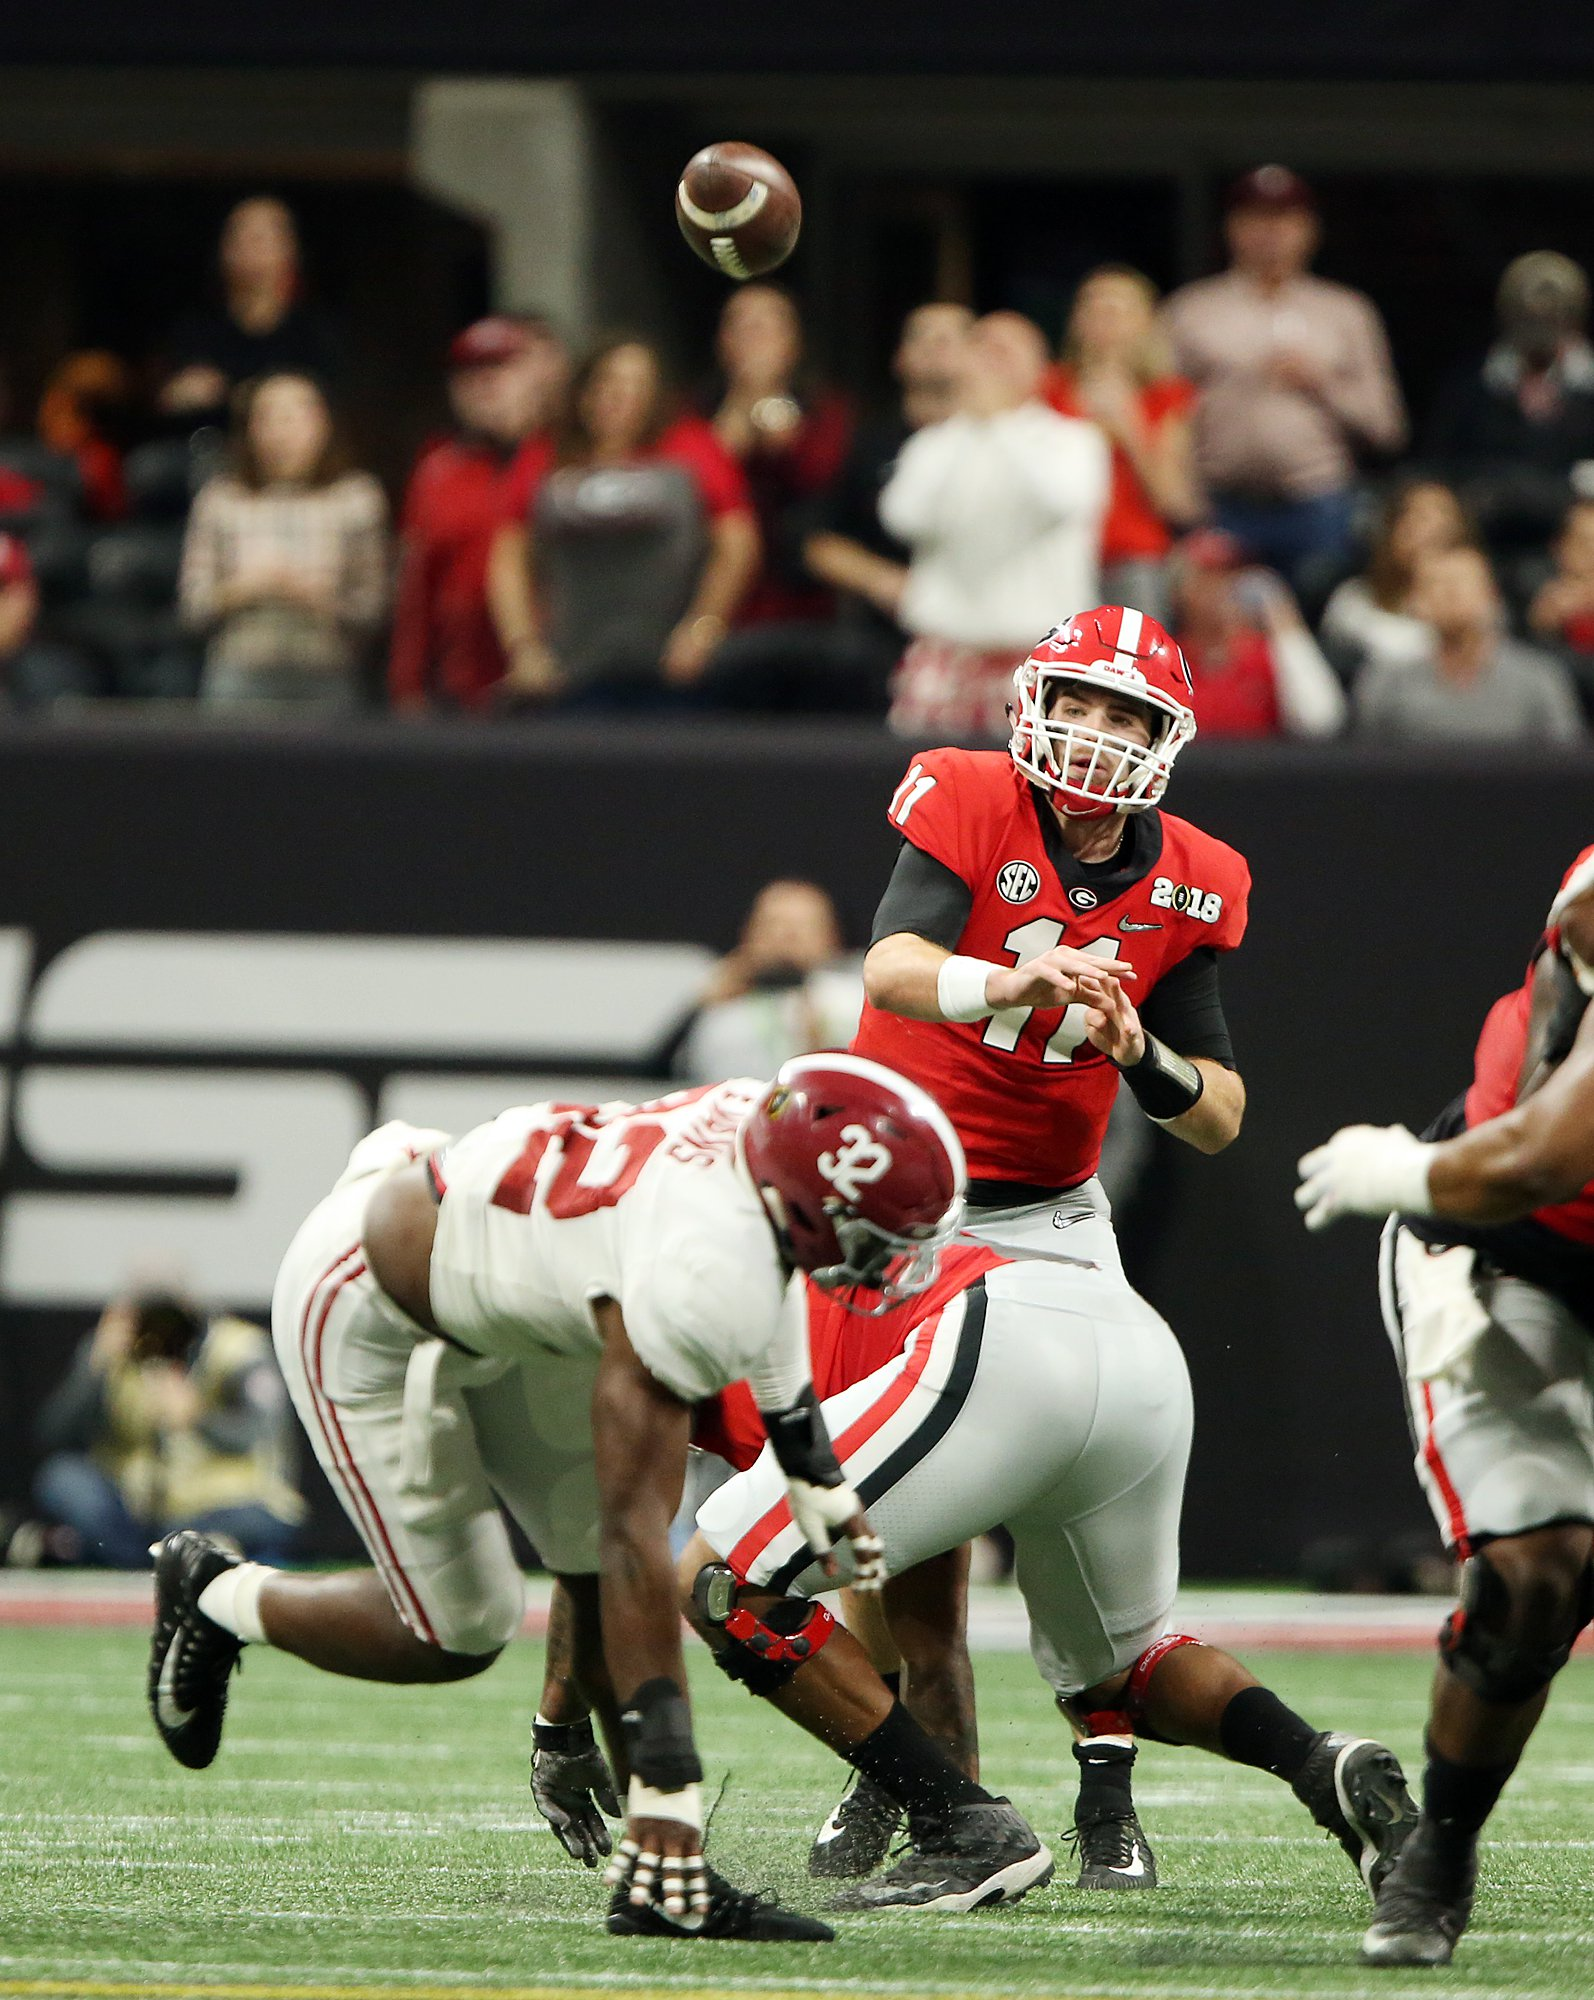 Jake Fromm throws a pass